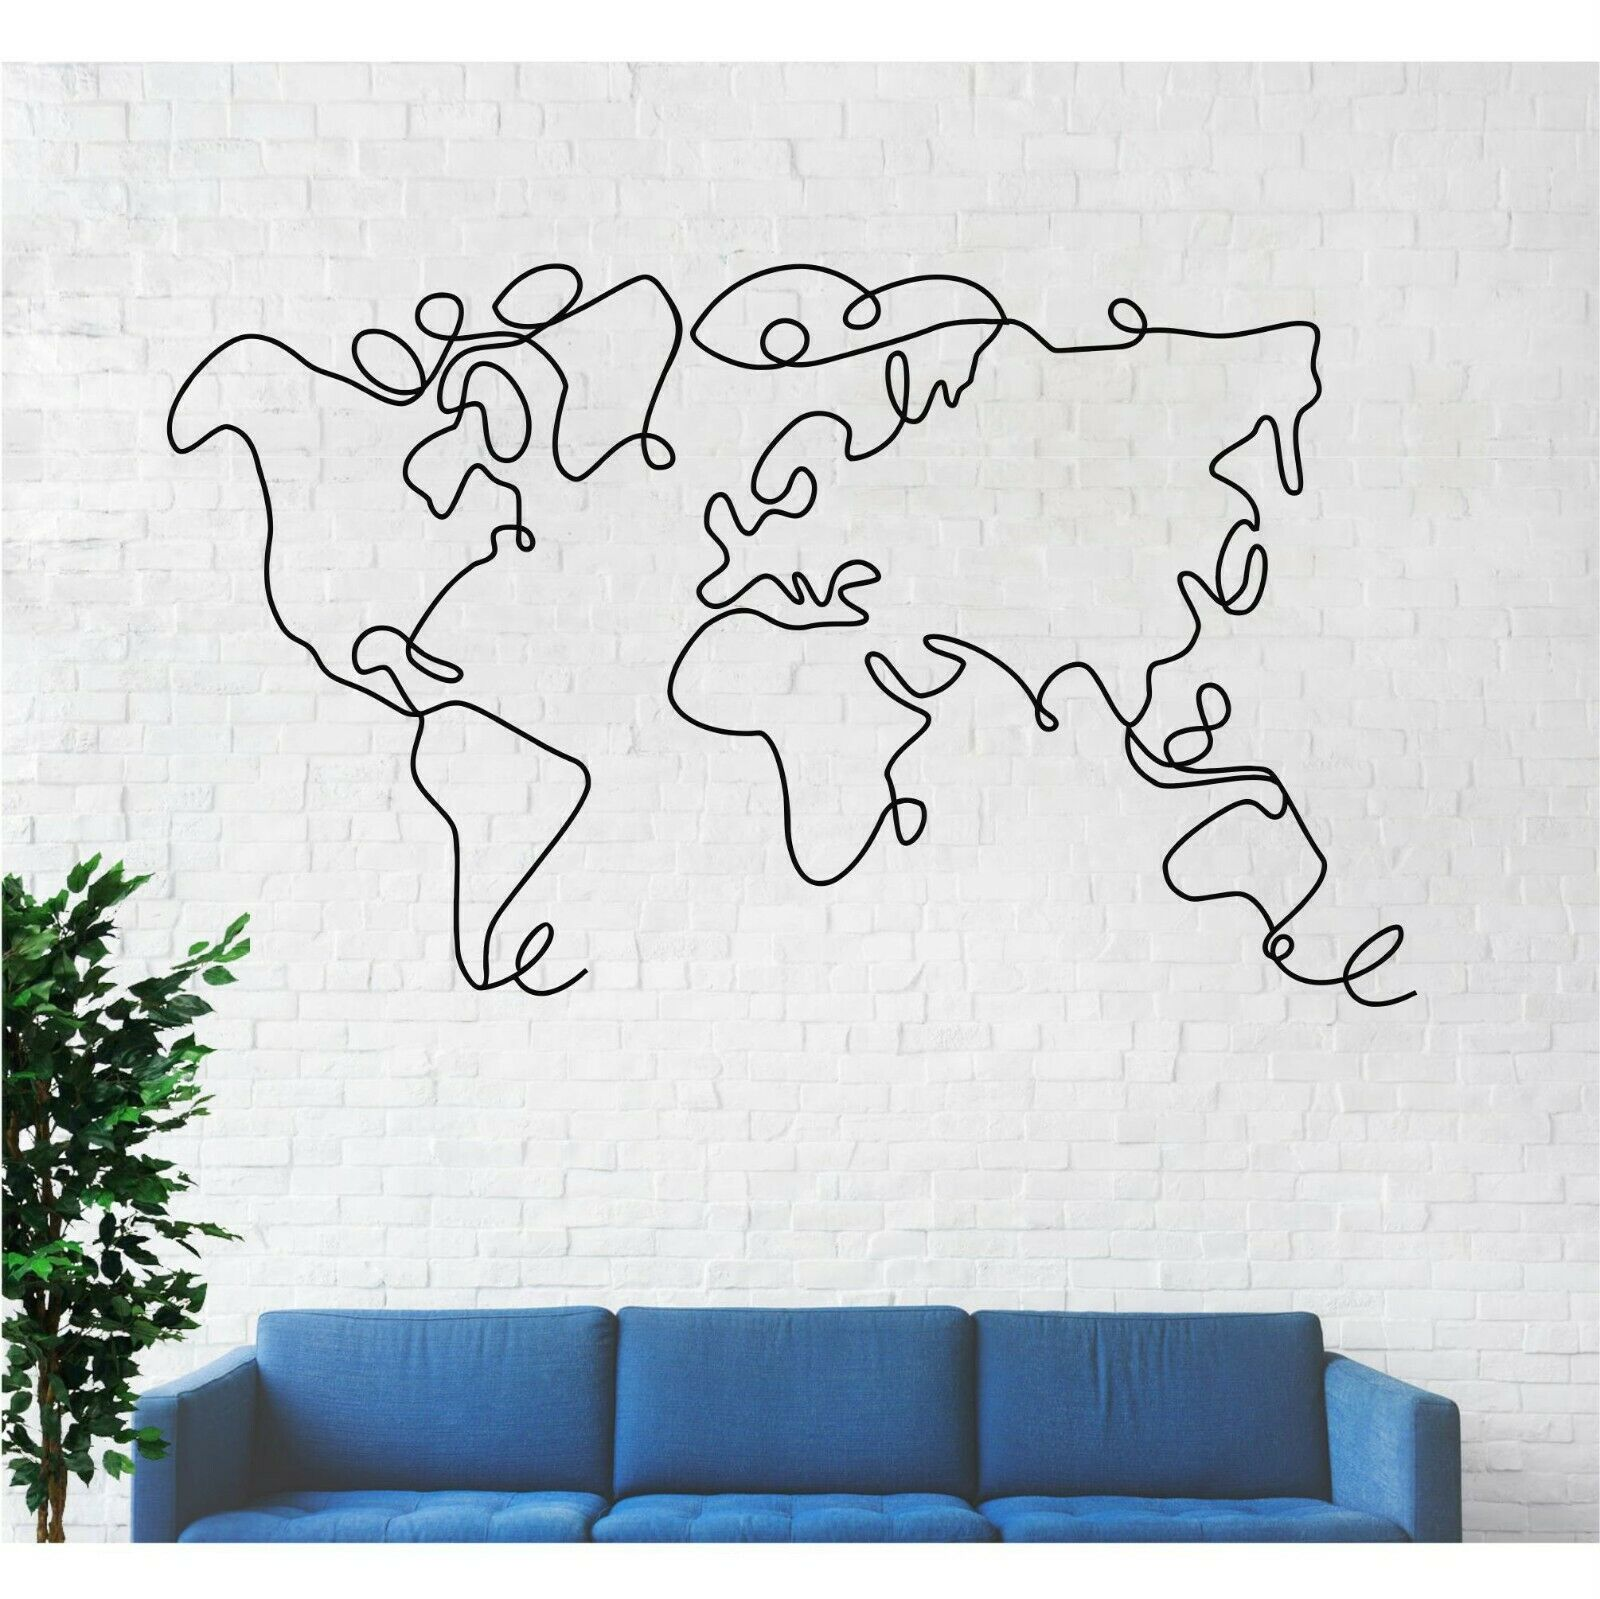 Geometric World Map Metal Wall Decor Home Office Living Room Bedroom  Decoration 1 Of 5FREE Shipping See More